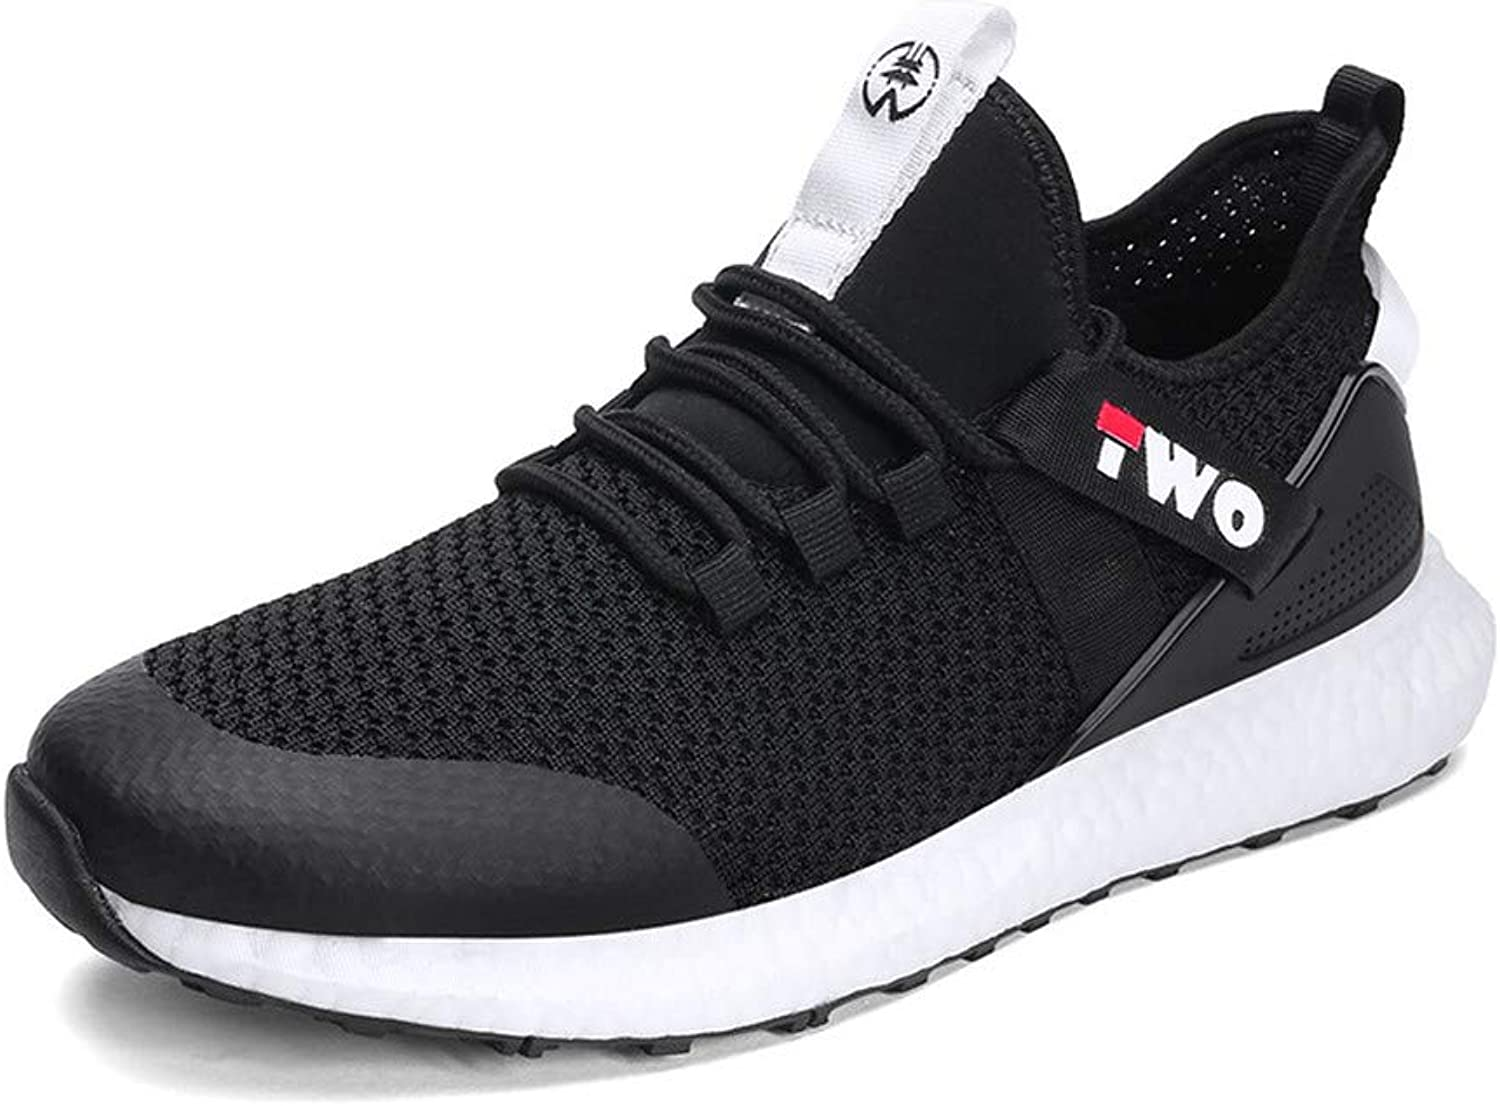 Fashion shoesbox Men's Women's Running shoes Fashion Breathable Sneakers Mesh Soft Sole Casual Athletic Lightweight Walking shoes